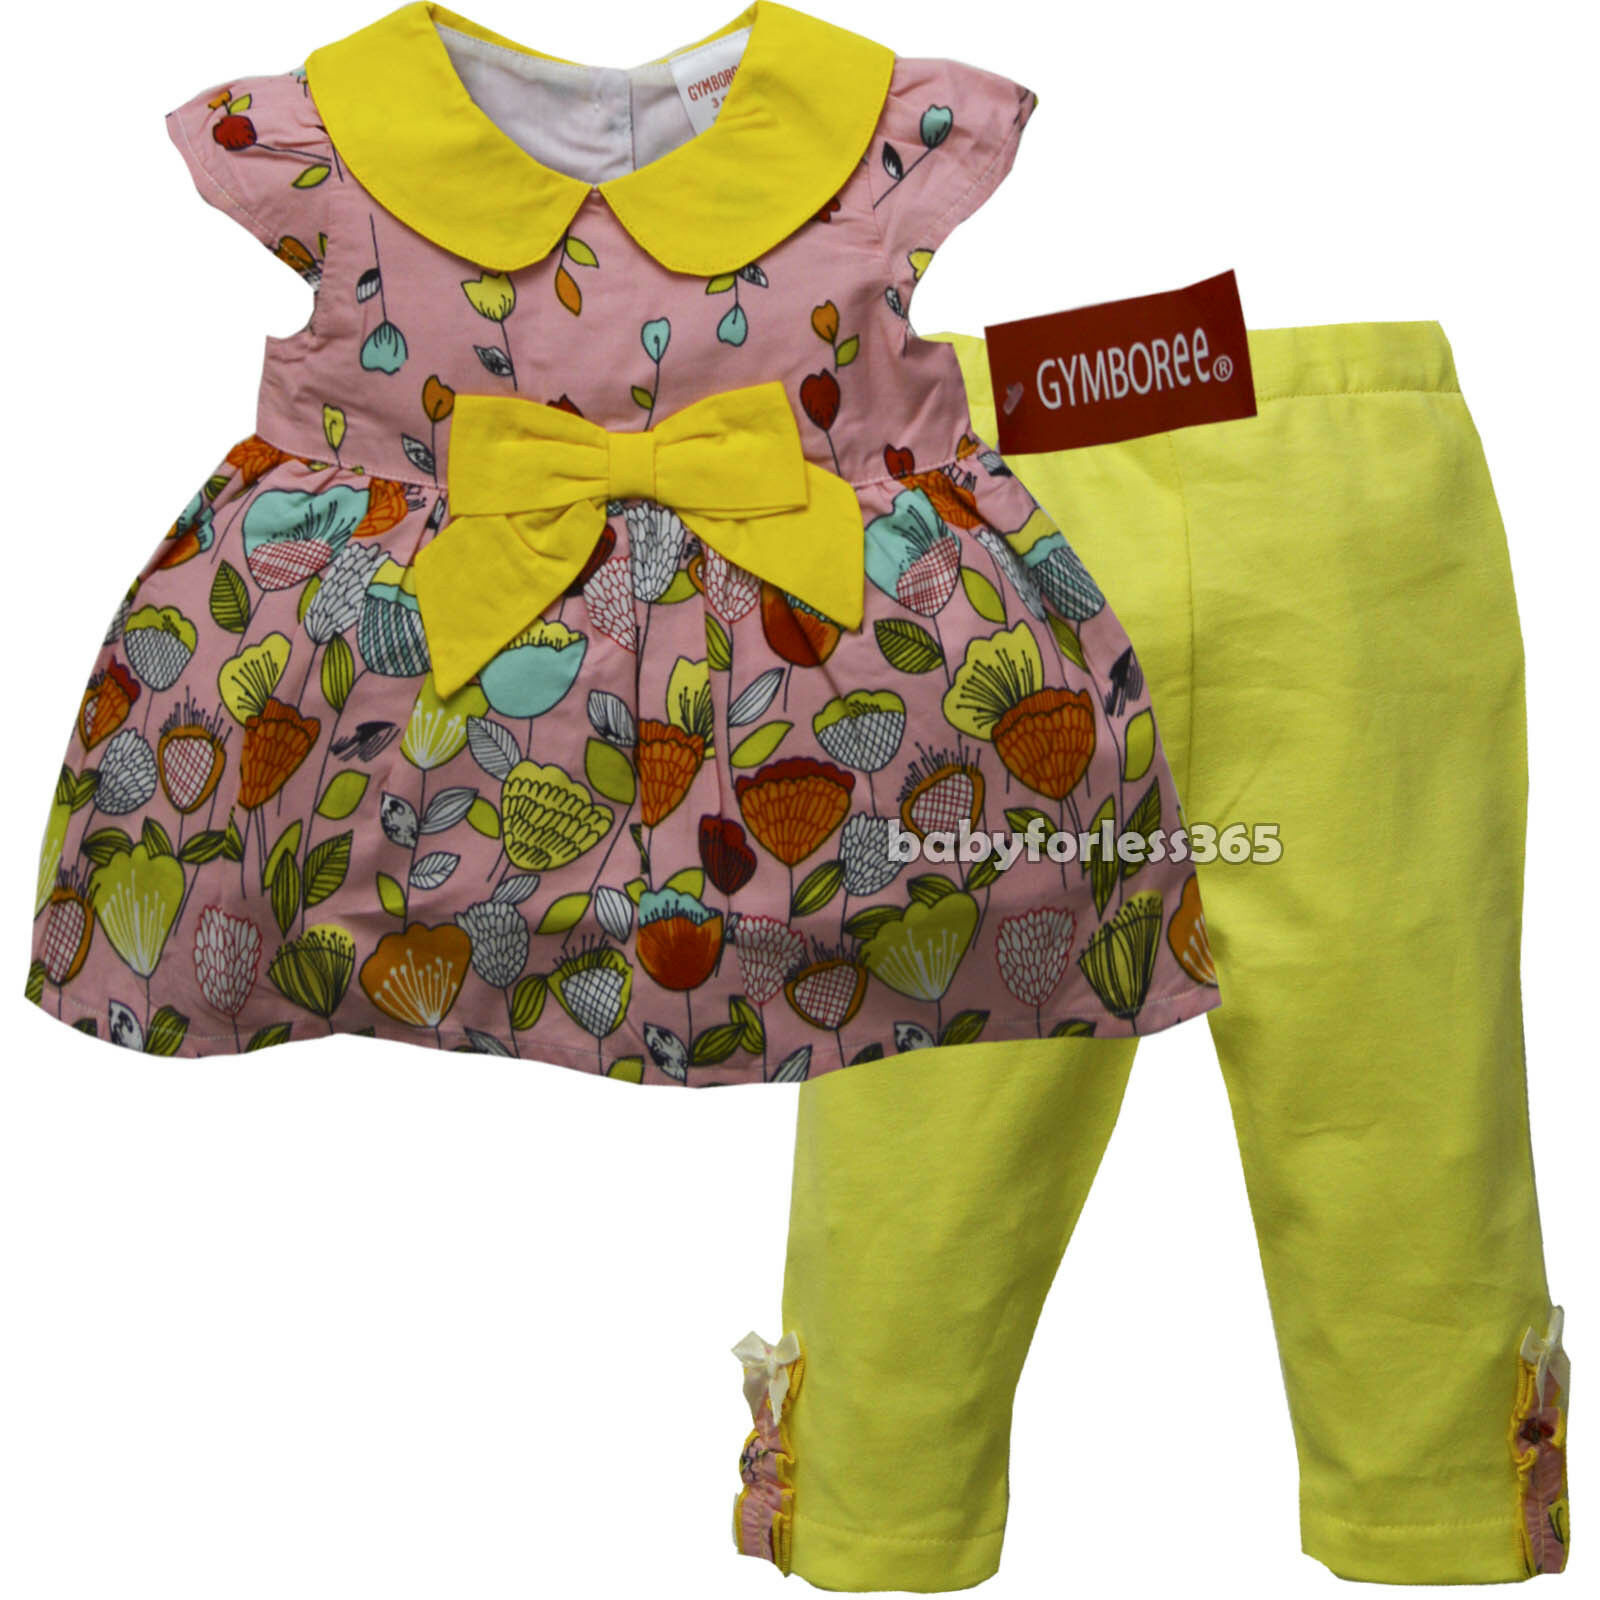 7259cd3729892 Details about New Gymboree Baby Girls Outfit 2 pc Shirt legging Size 3 6 9 12  18 24 months